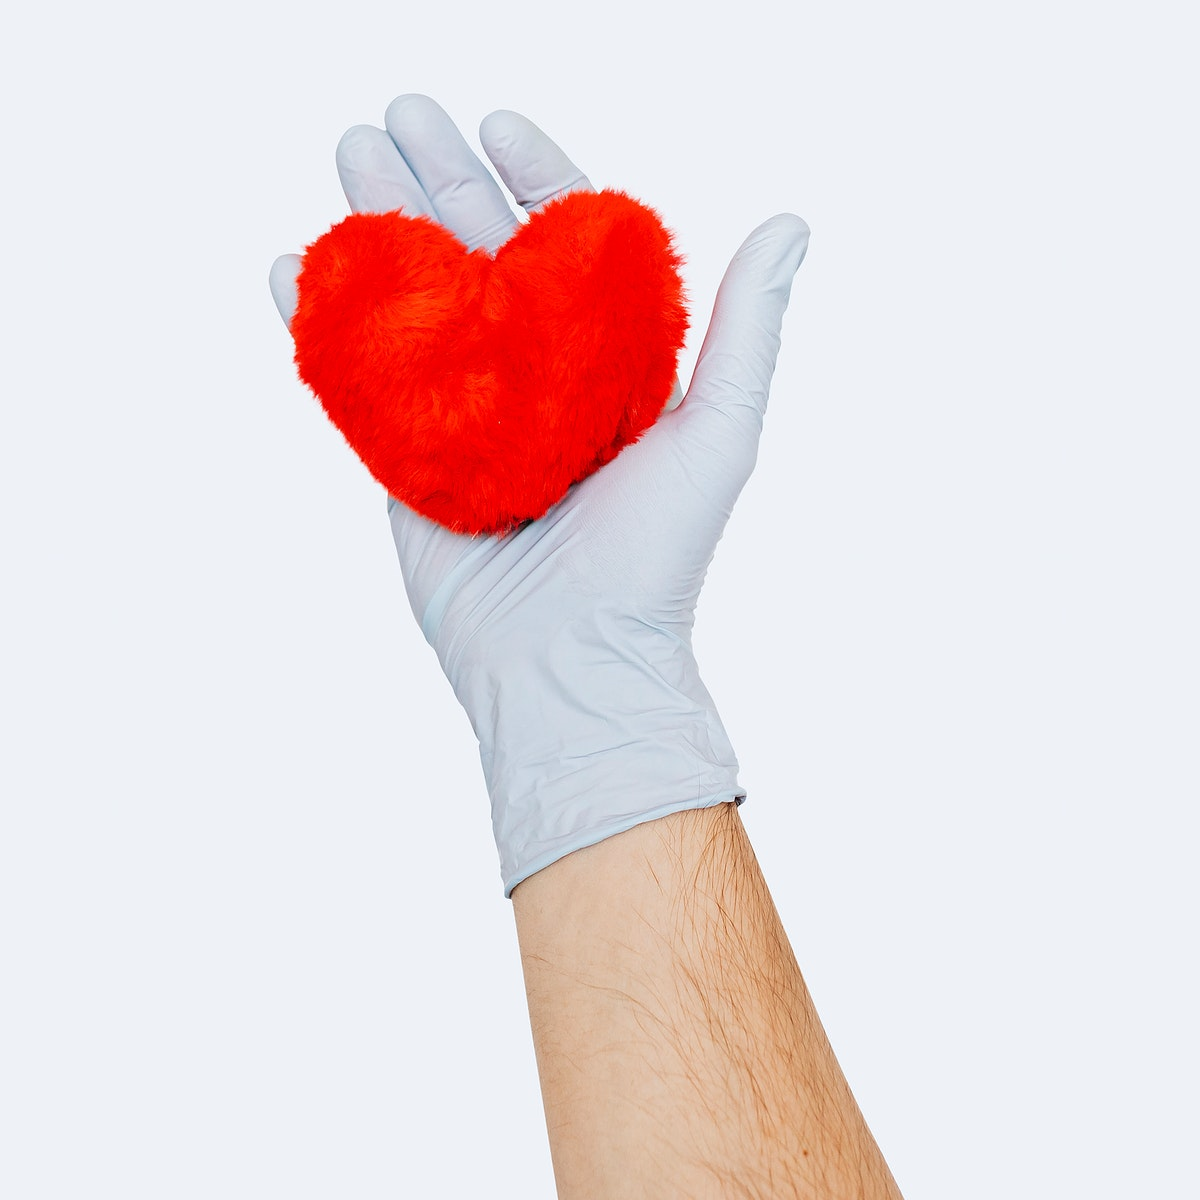 Gloved hand holding a fluffy red heart mockup